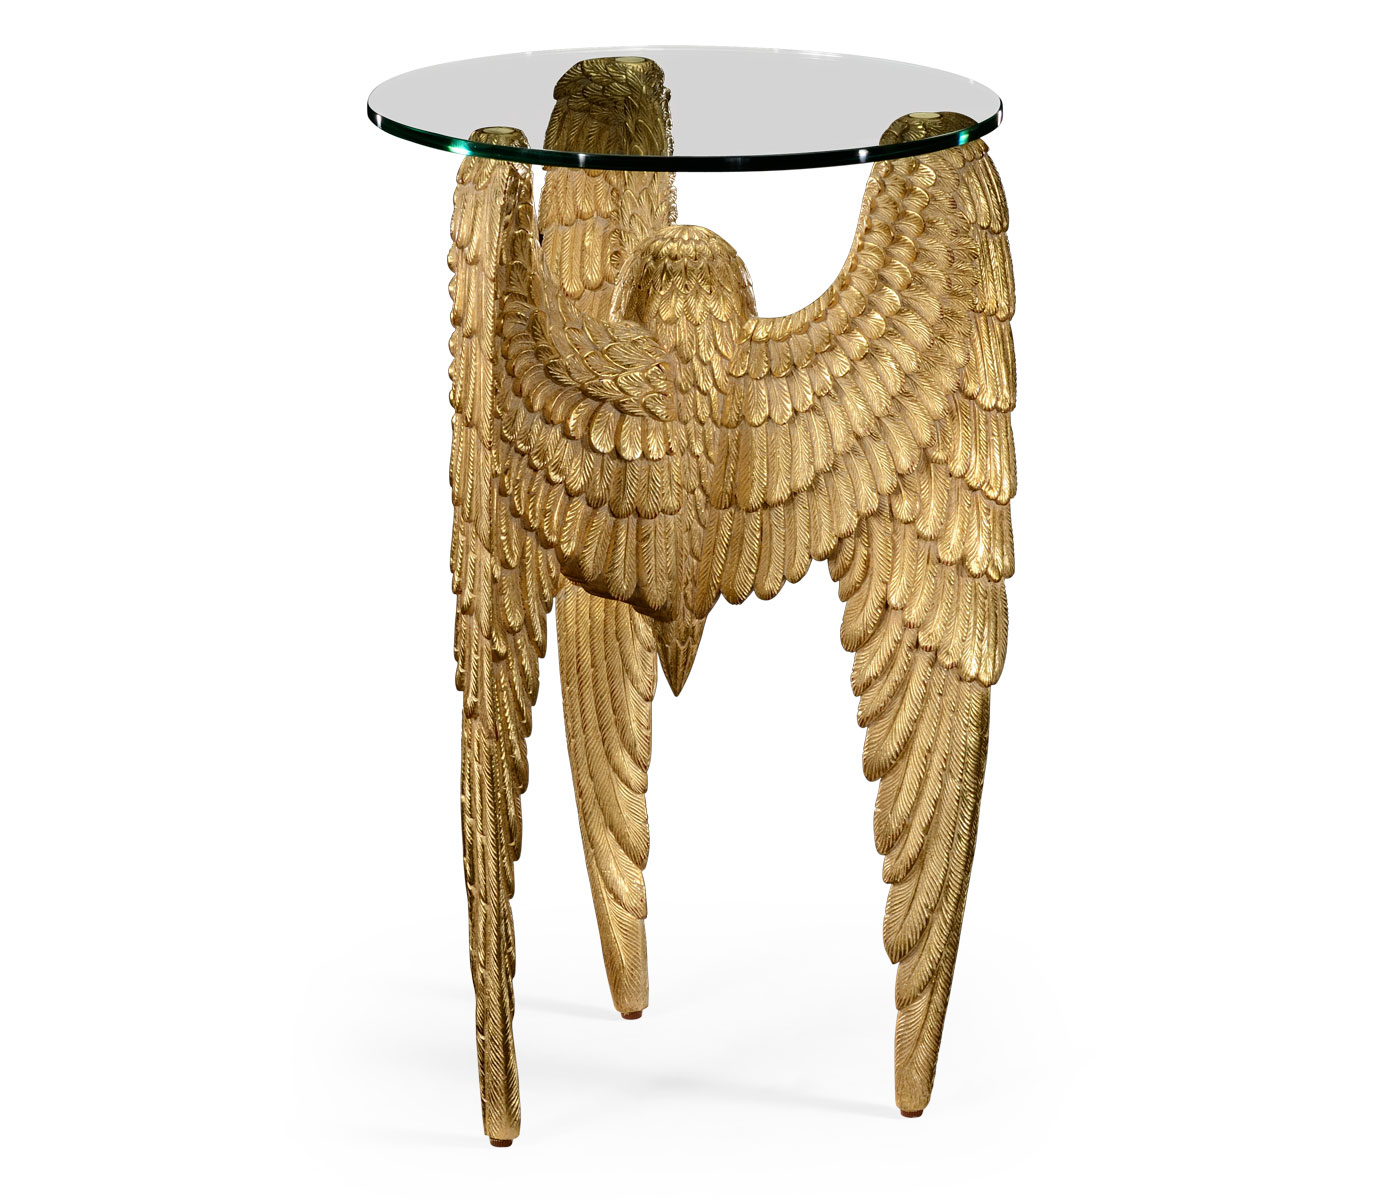 angels wing side table winged designer tables accent lighting seattle limited production design tall gold gilded partner wall mirrors chairs available hospitality residential